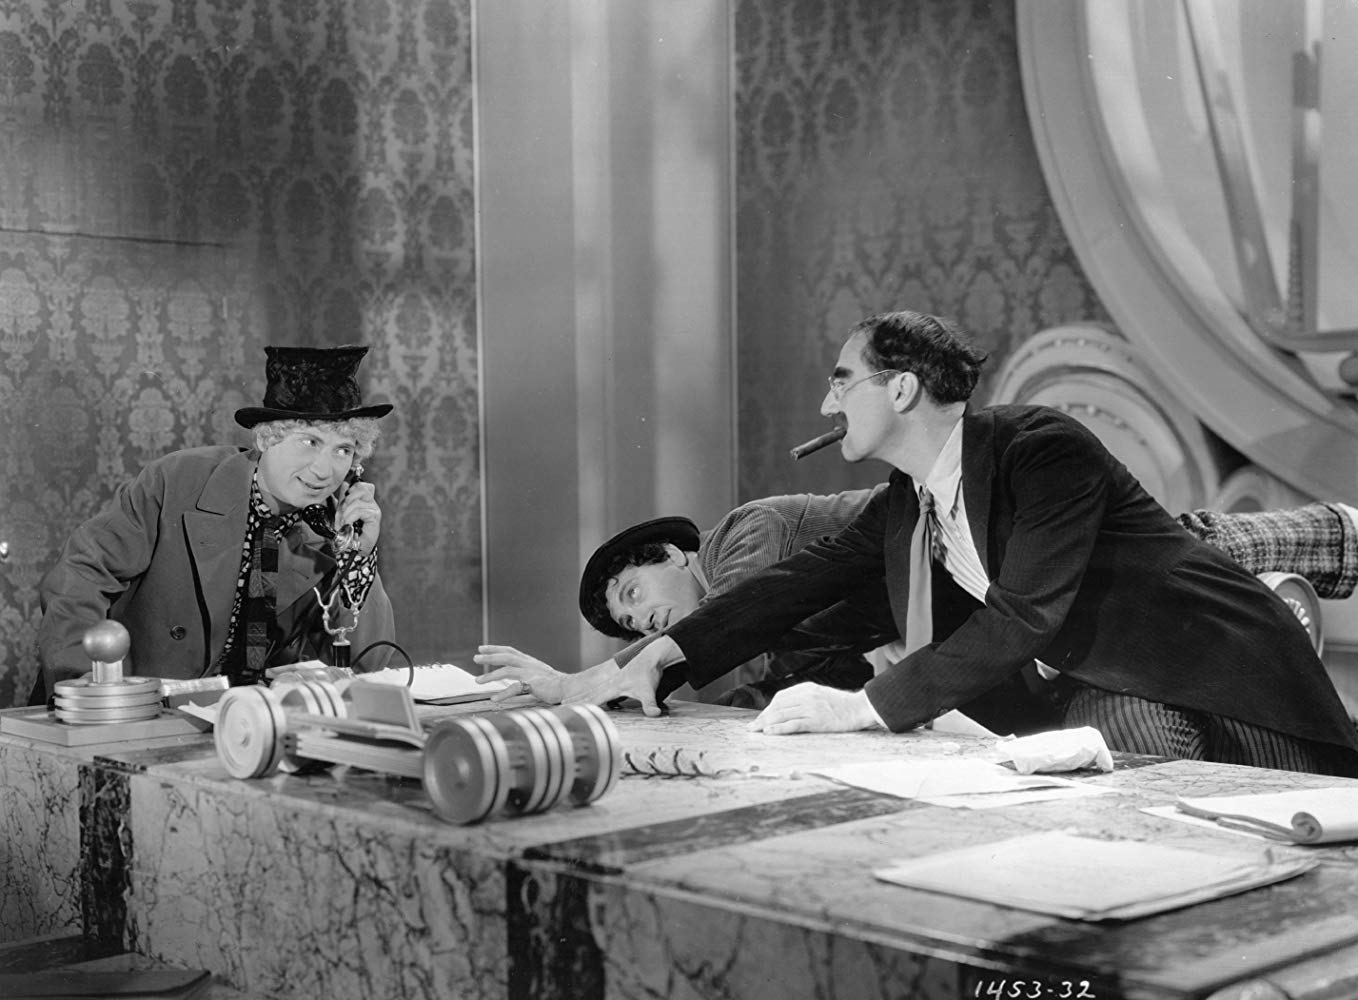 The Films That Made Me: The Marx Brothers' Duck Soup (1933, USA)